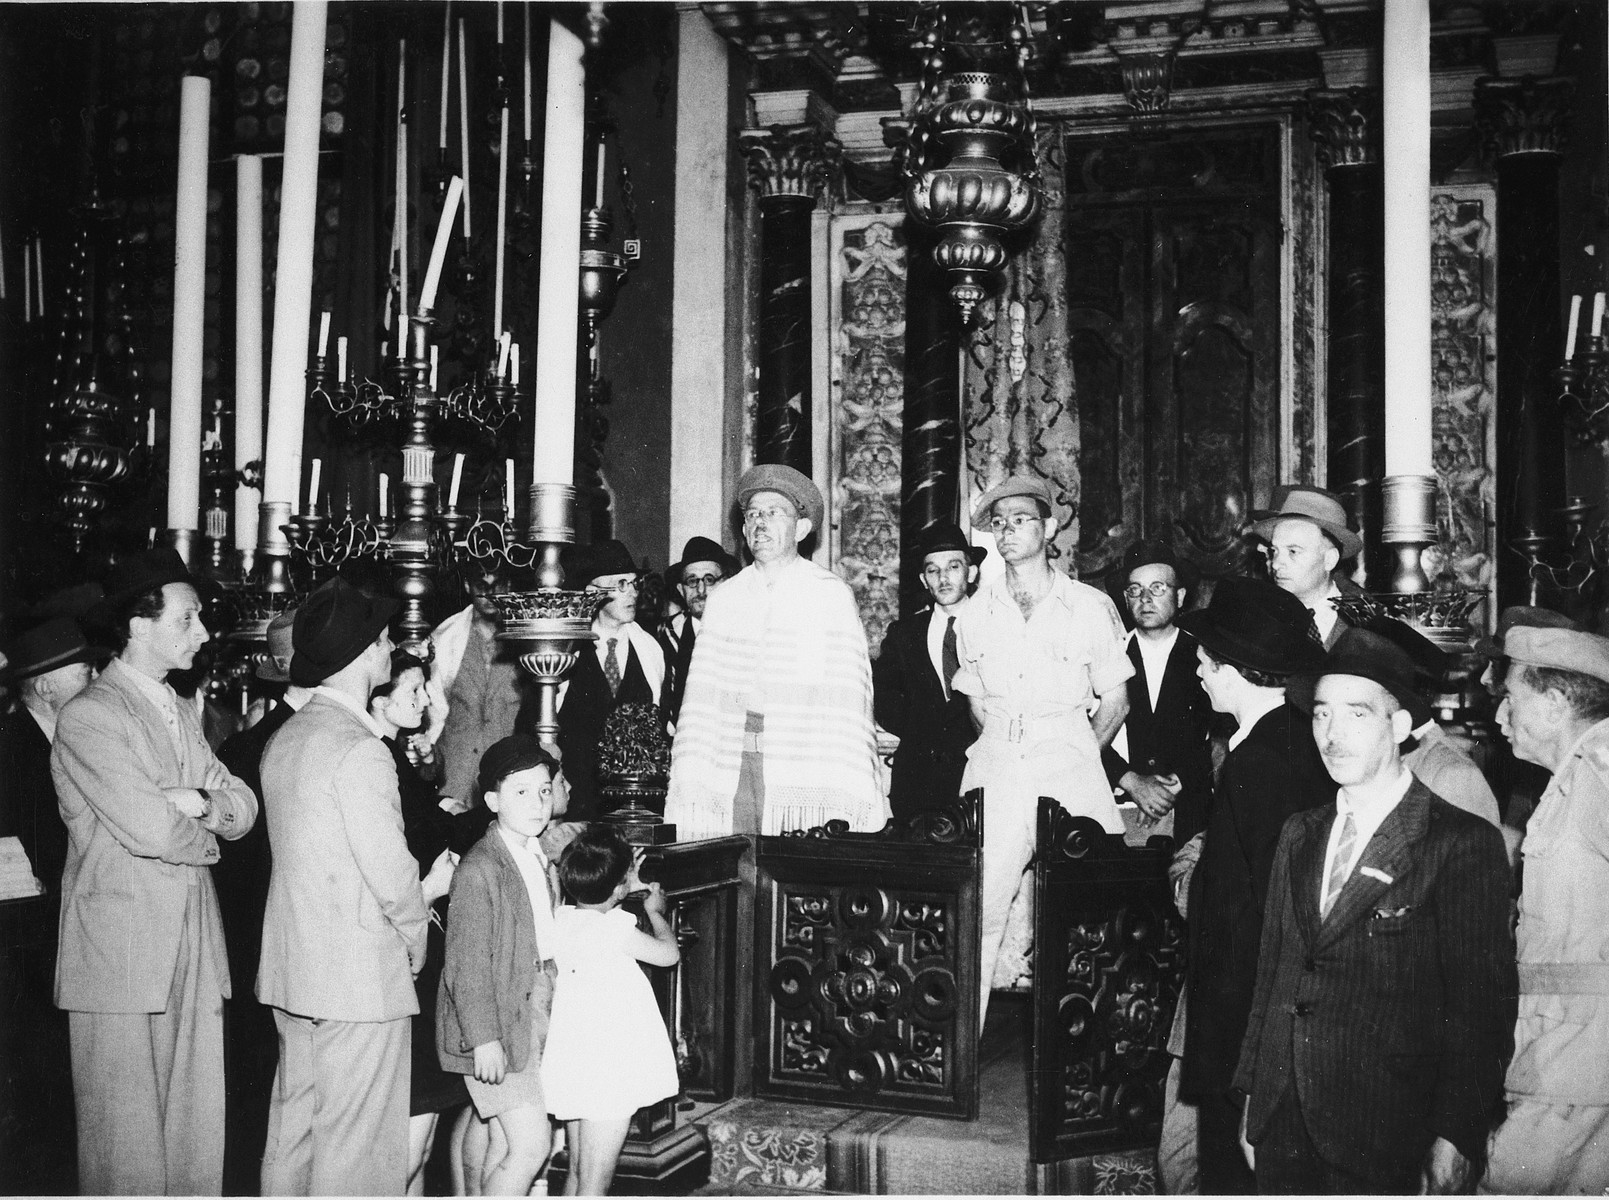 Jewish survivors gather in the Great German Synagogue in Venice.  Pictured to the left of the rabbi is Immanuel Ascarelli wearing his Jewish Brigade uniform.